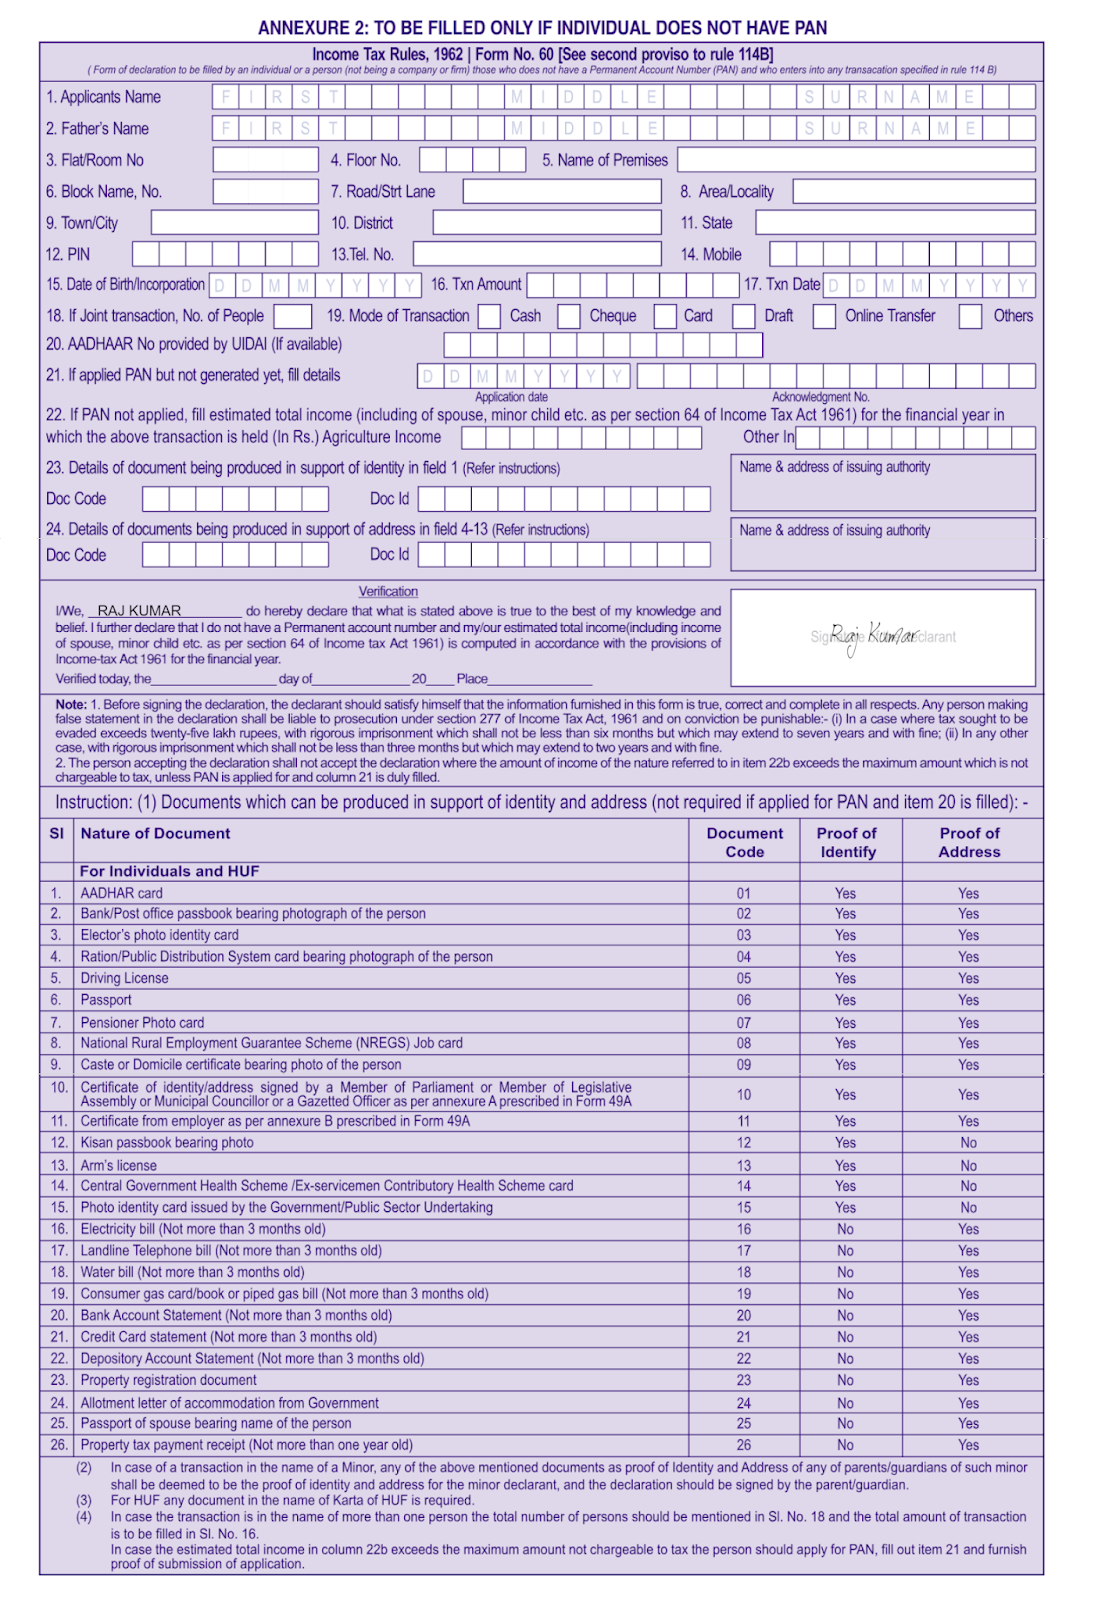 04 Online Form Filling Job Without Investment In India on